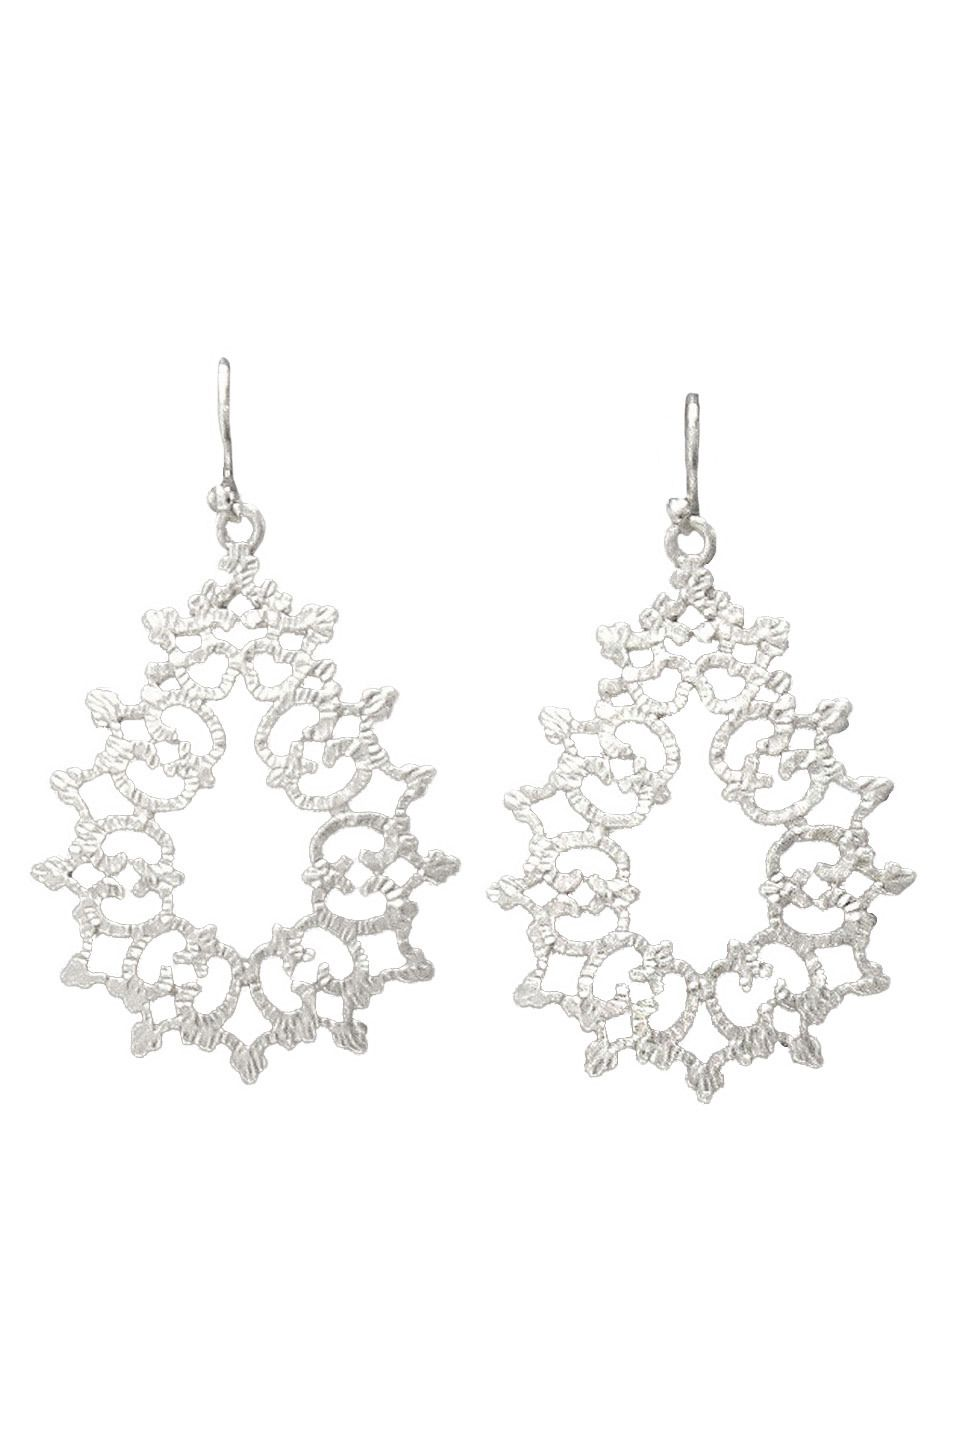 Le Chic White Gold Plated Hammered Floral Design Earrings - Beyond the Rack